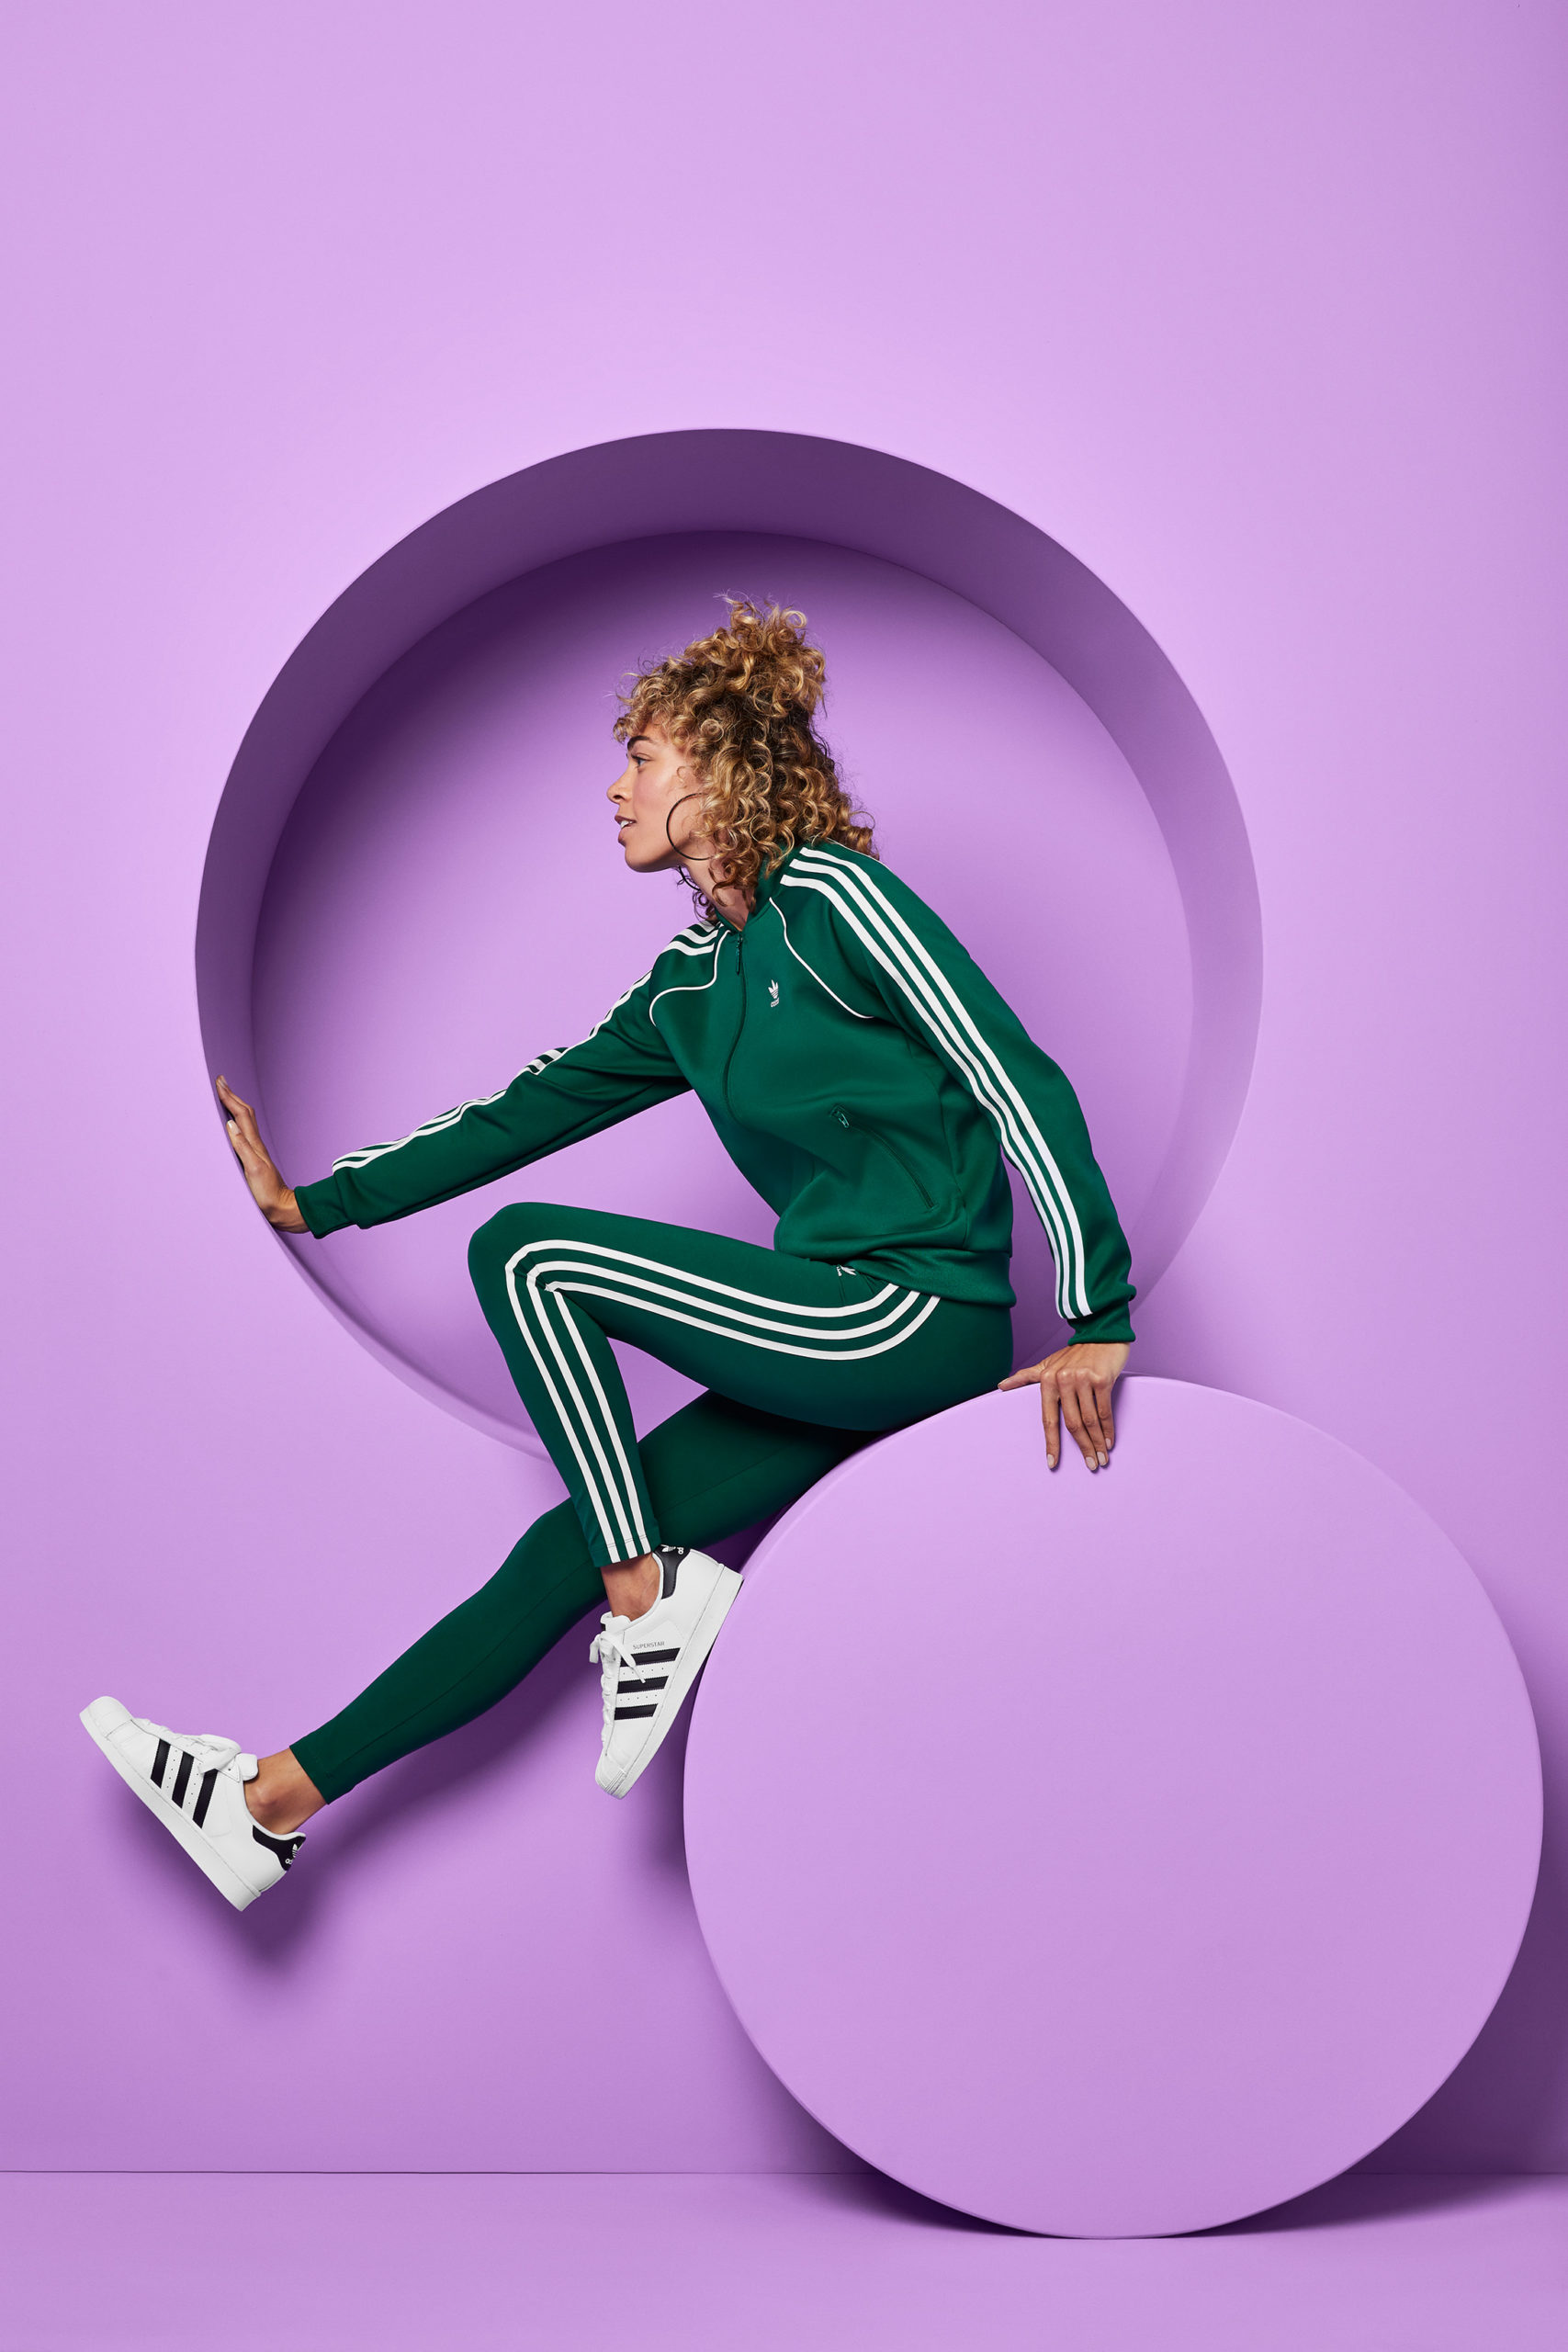 A woman in a green jacket and tights sits on a round set piece against a lavender set.